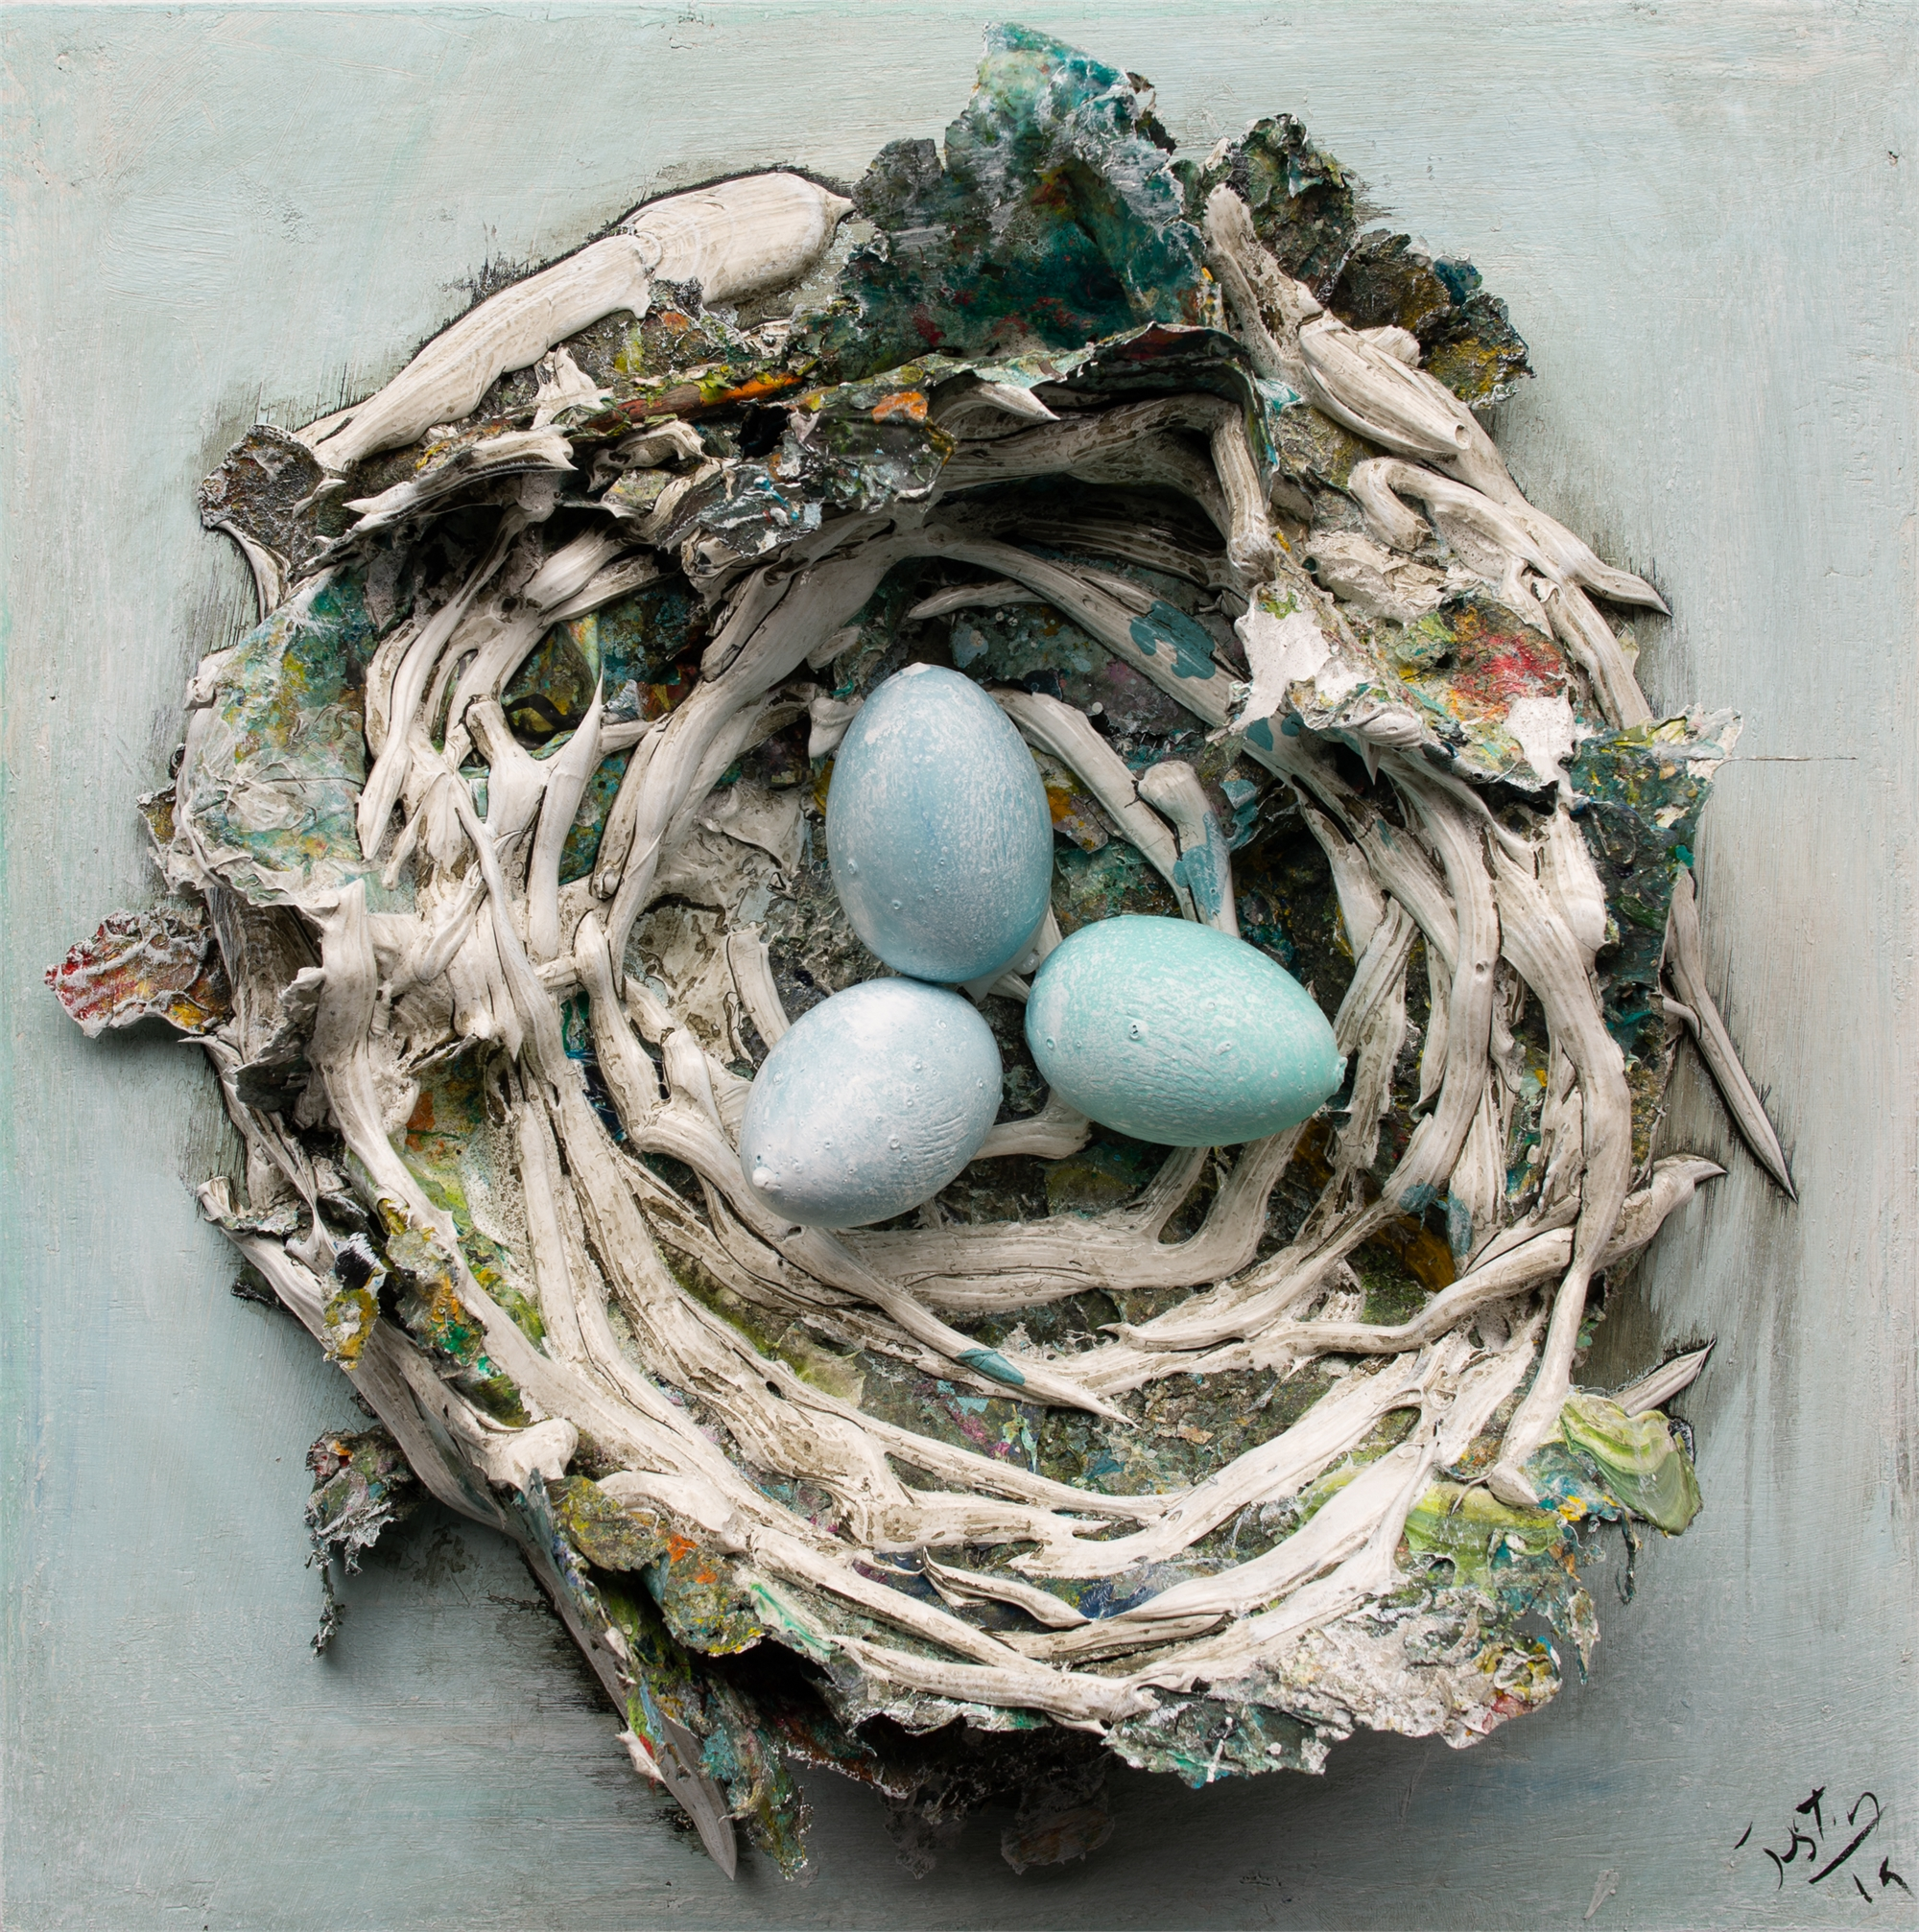 (SOLD) NEST NS-16x16-2019-264 by JUSTIN GAFFREY